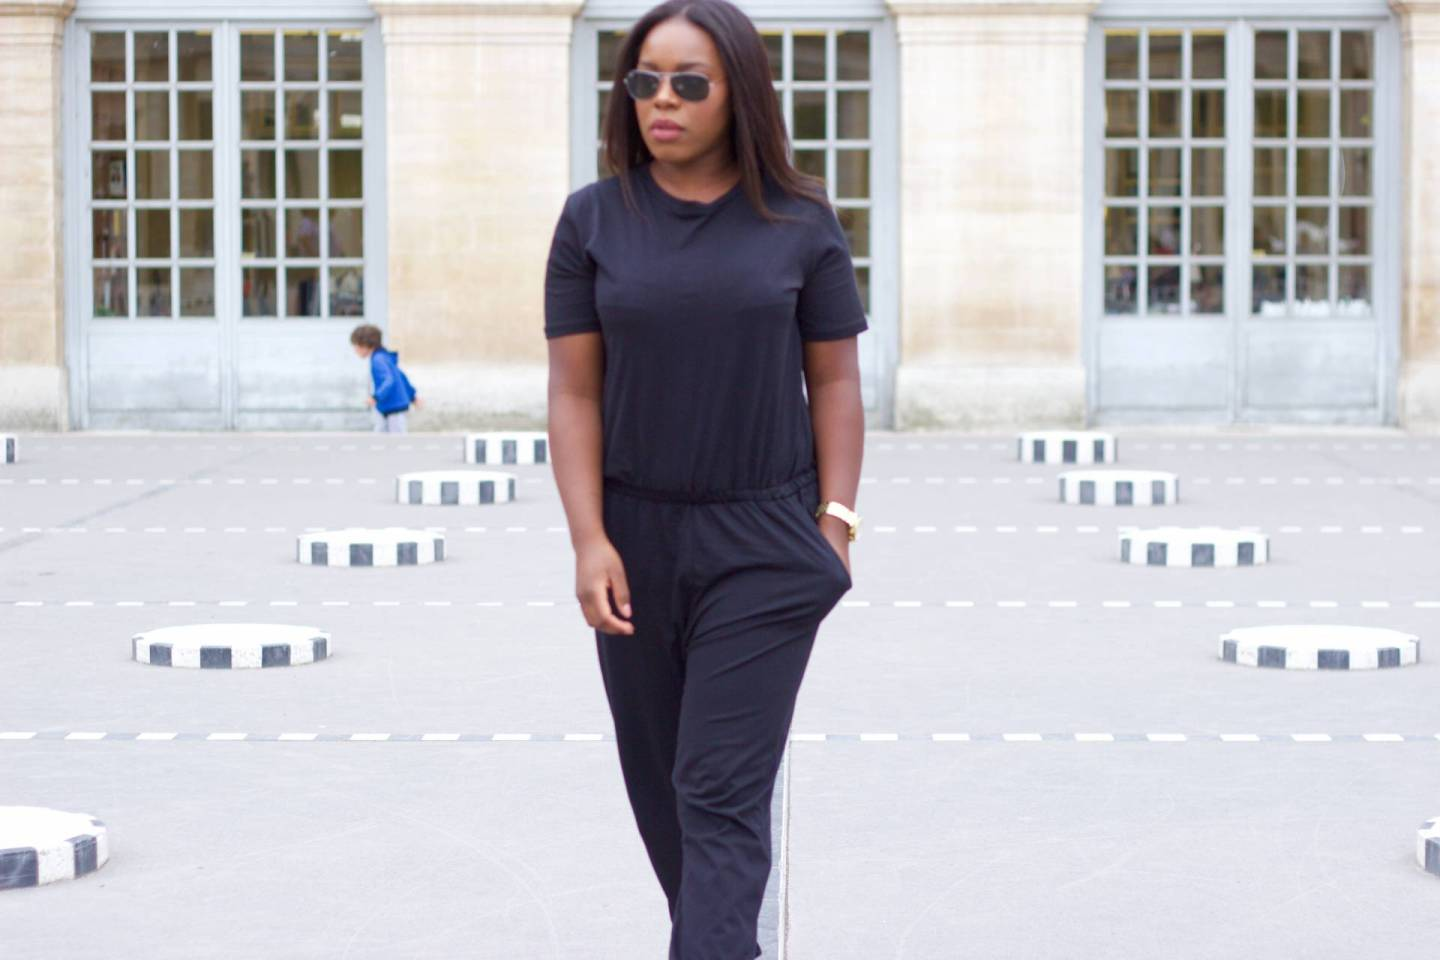 FRIDAY WEAR…  UNE SEMAINE PRODUCTIVE